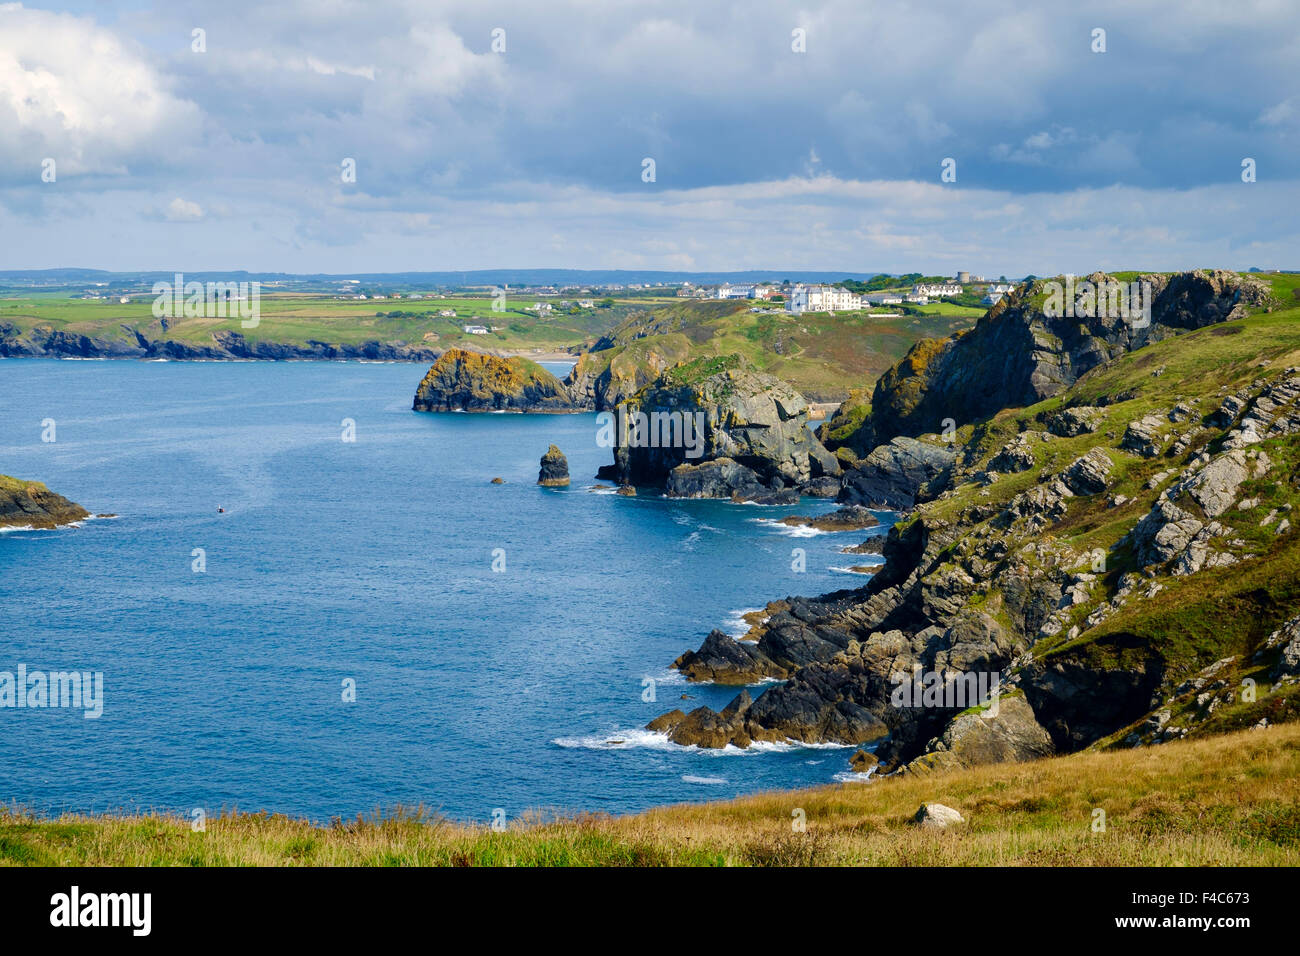 View of Cornish coast from South West Coast Path at Mullion, Lizard Peninsula, Cornwall, England, UK - Stock Image